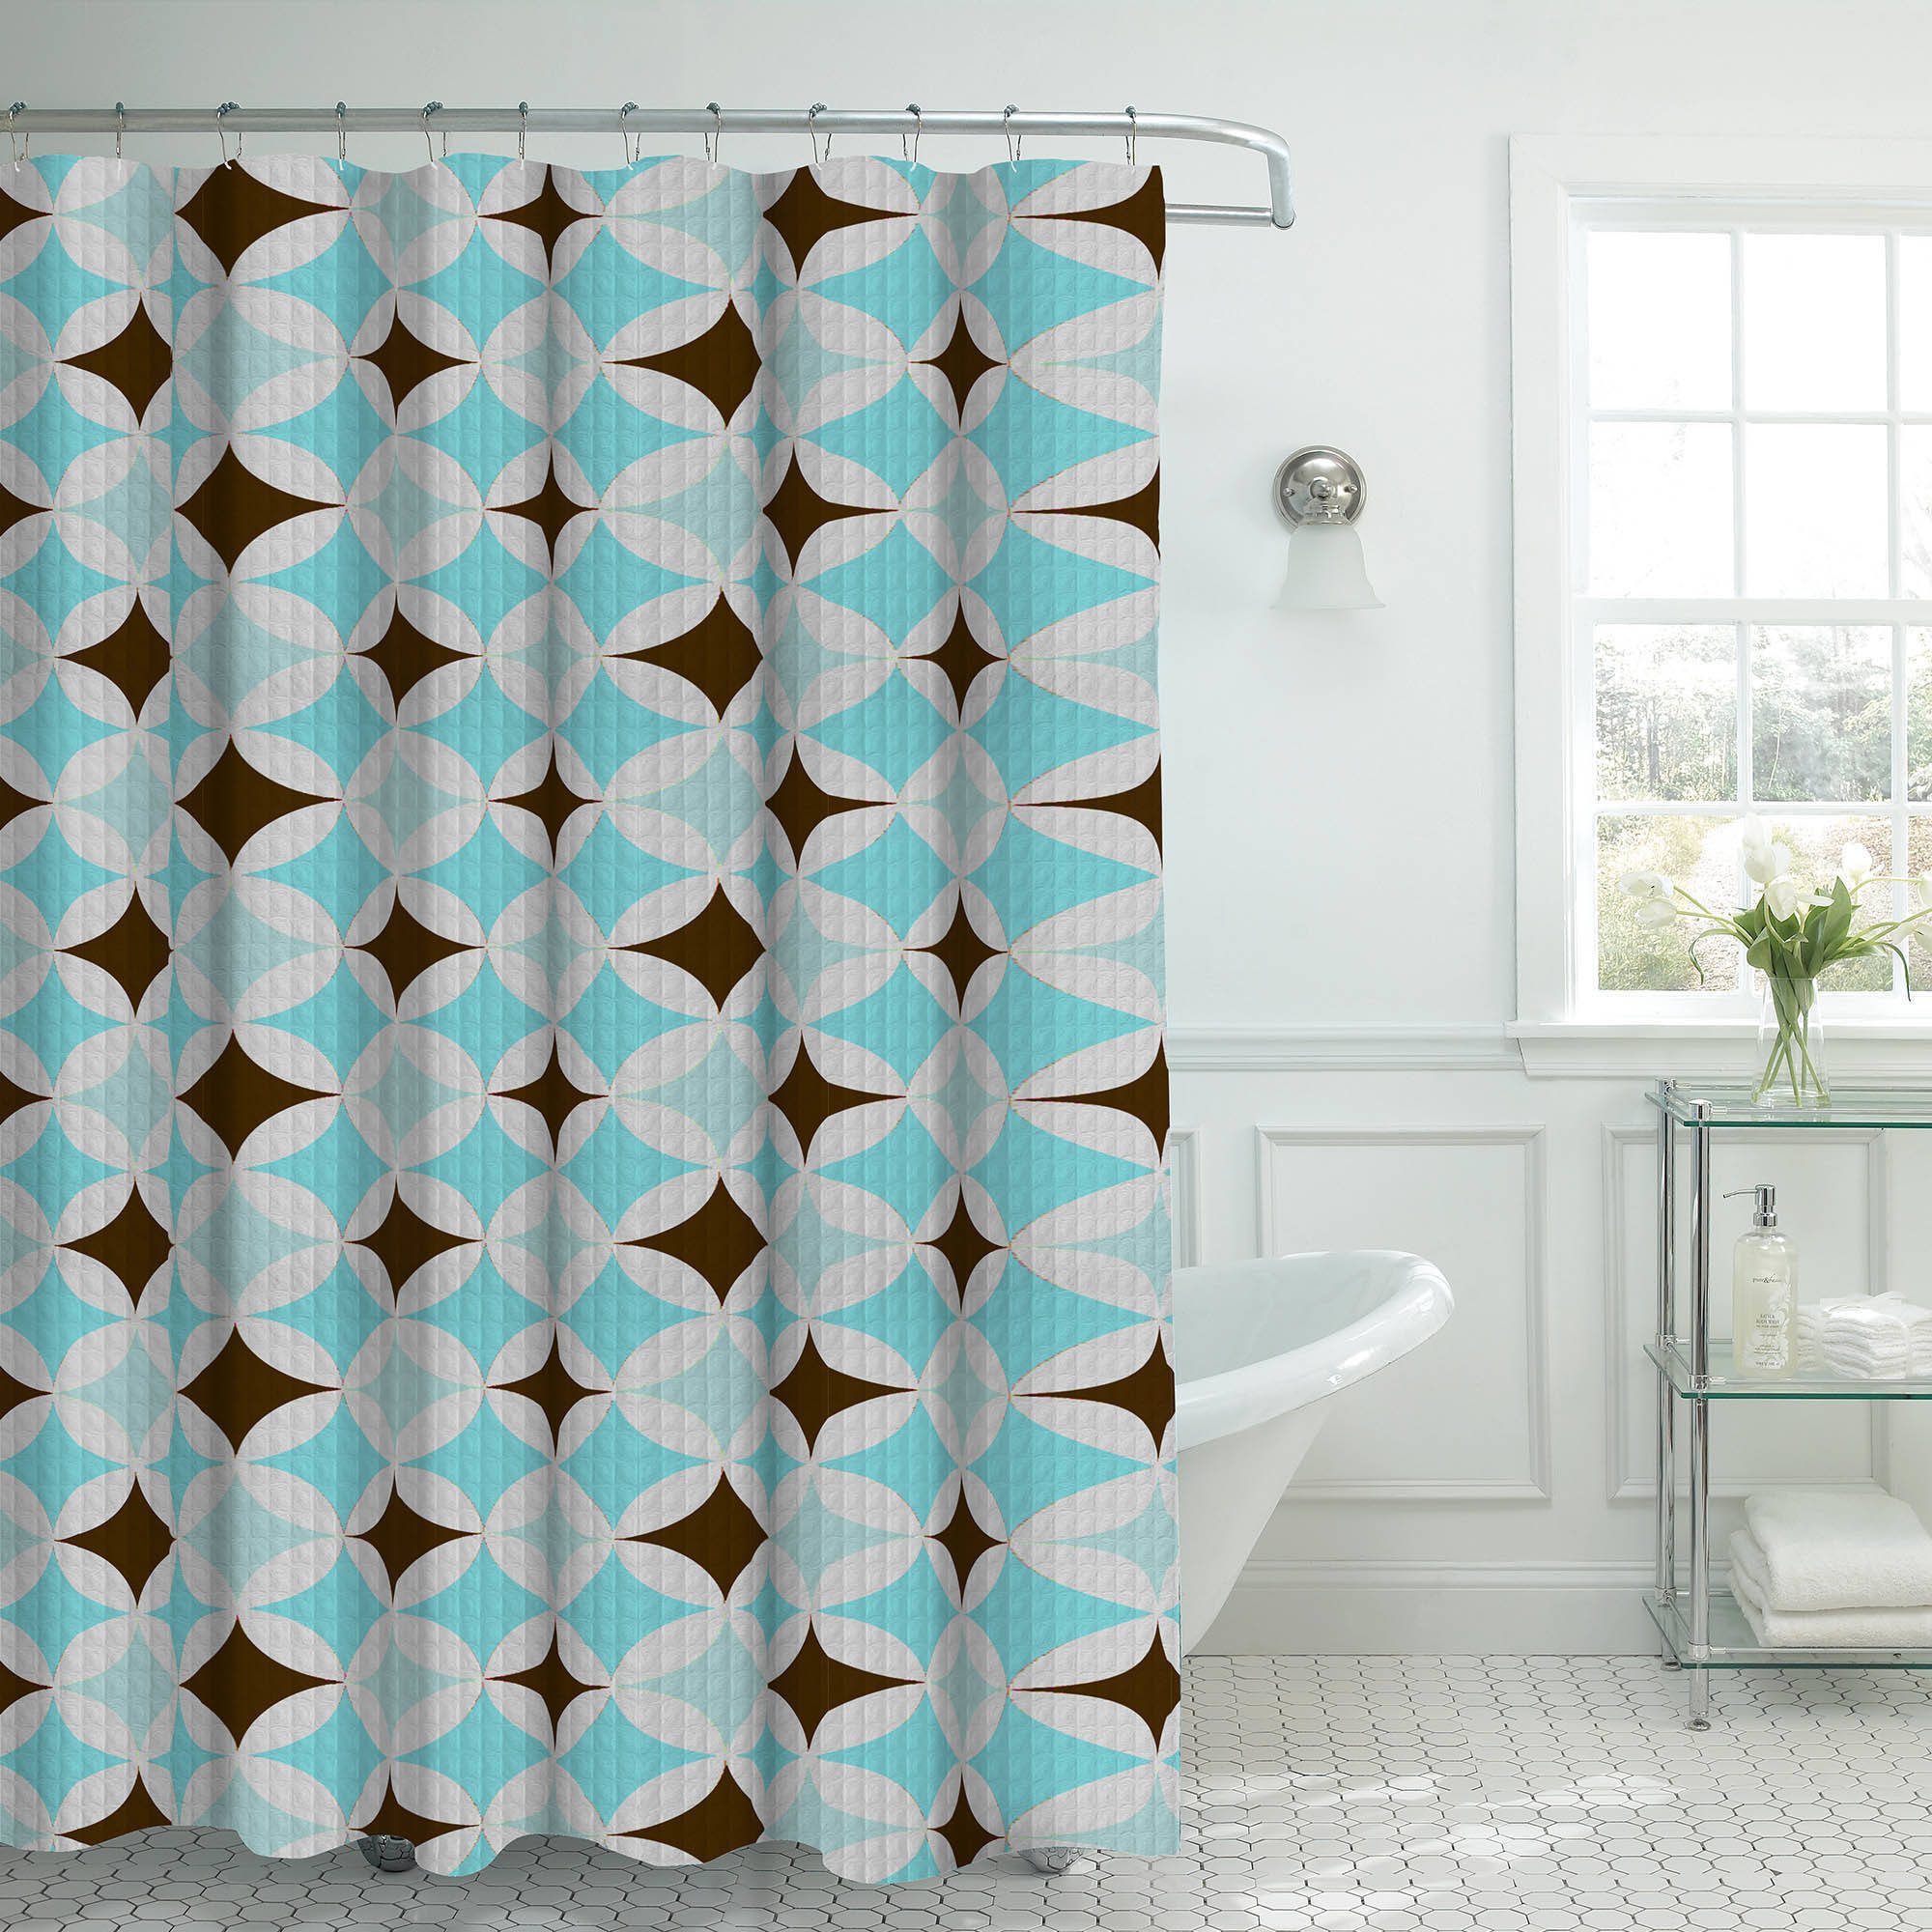 Bounce Comfort Oxford Weave Textured 13-Piece Shower Curtain Set with Metal Roller Hooks, Avatar Aqua